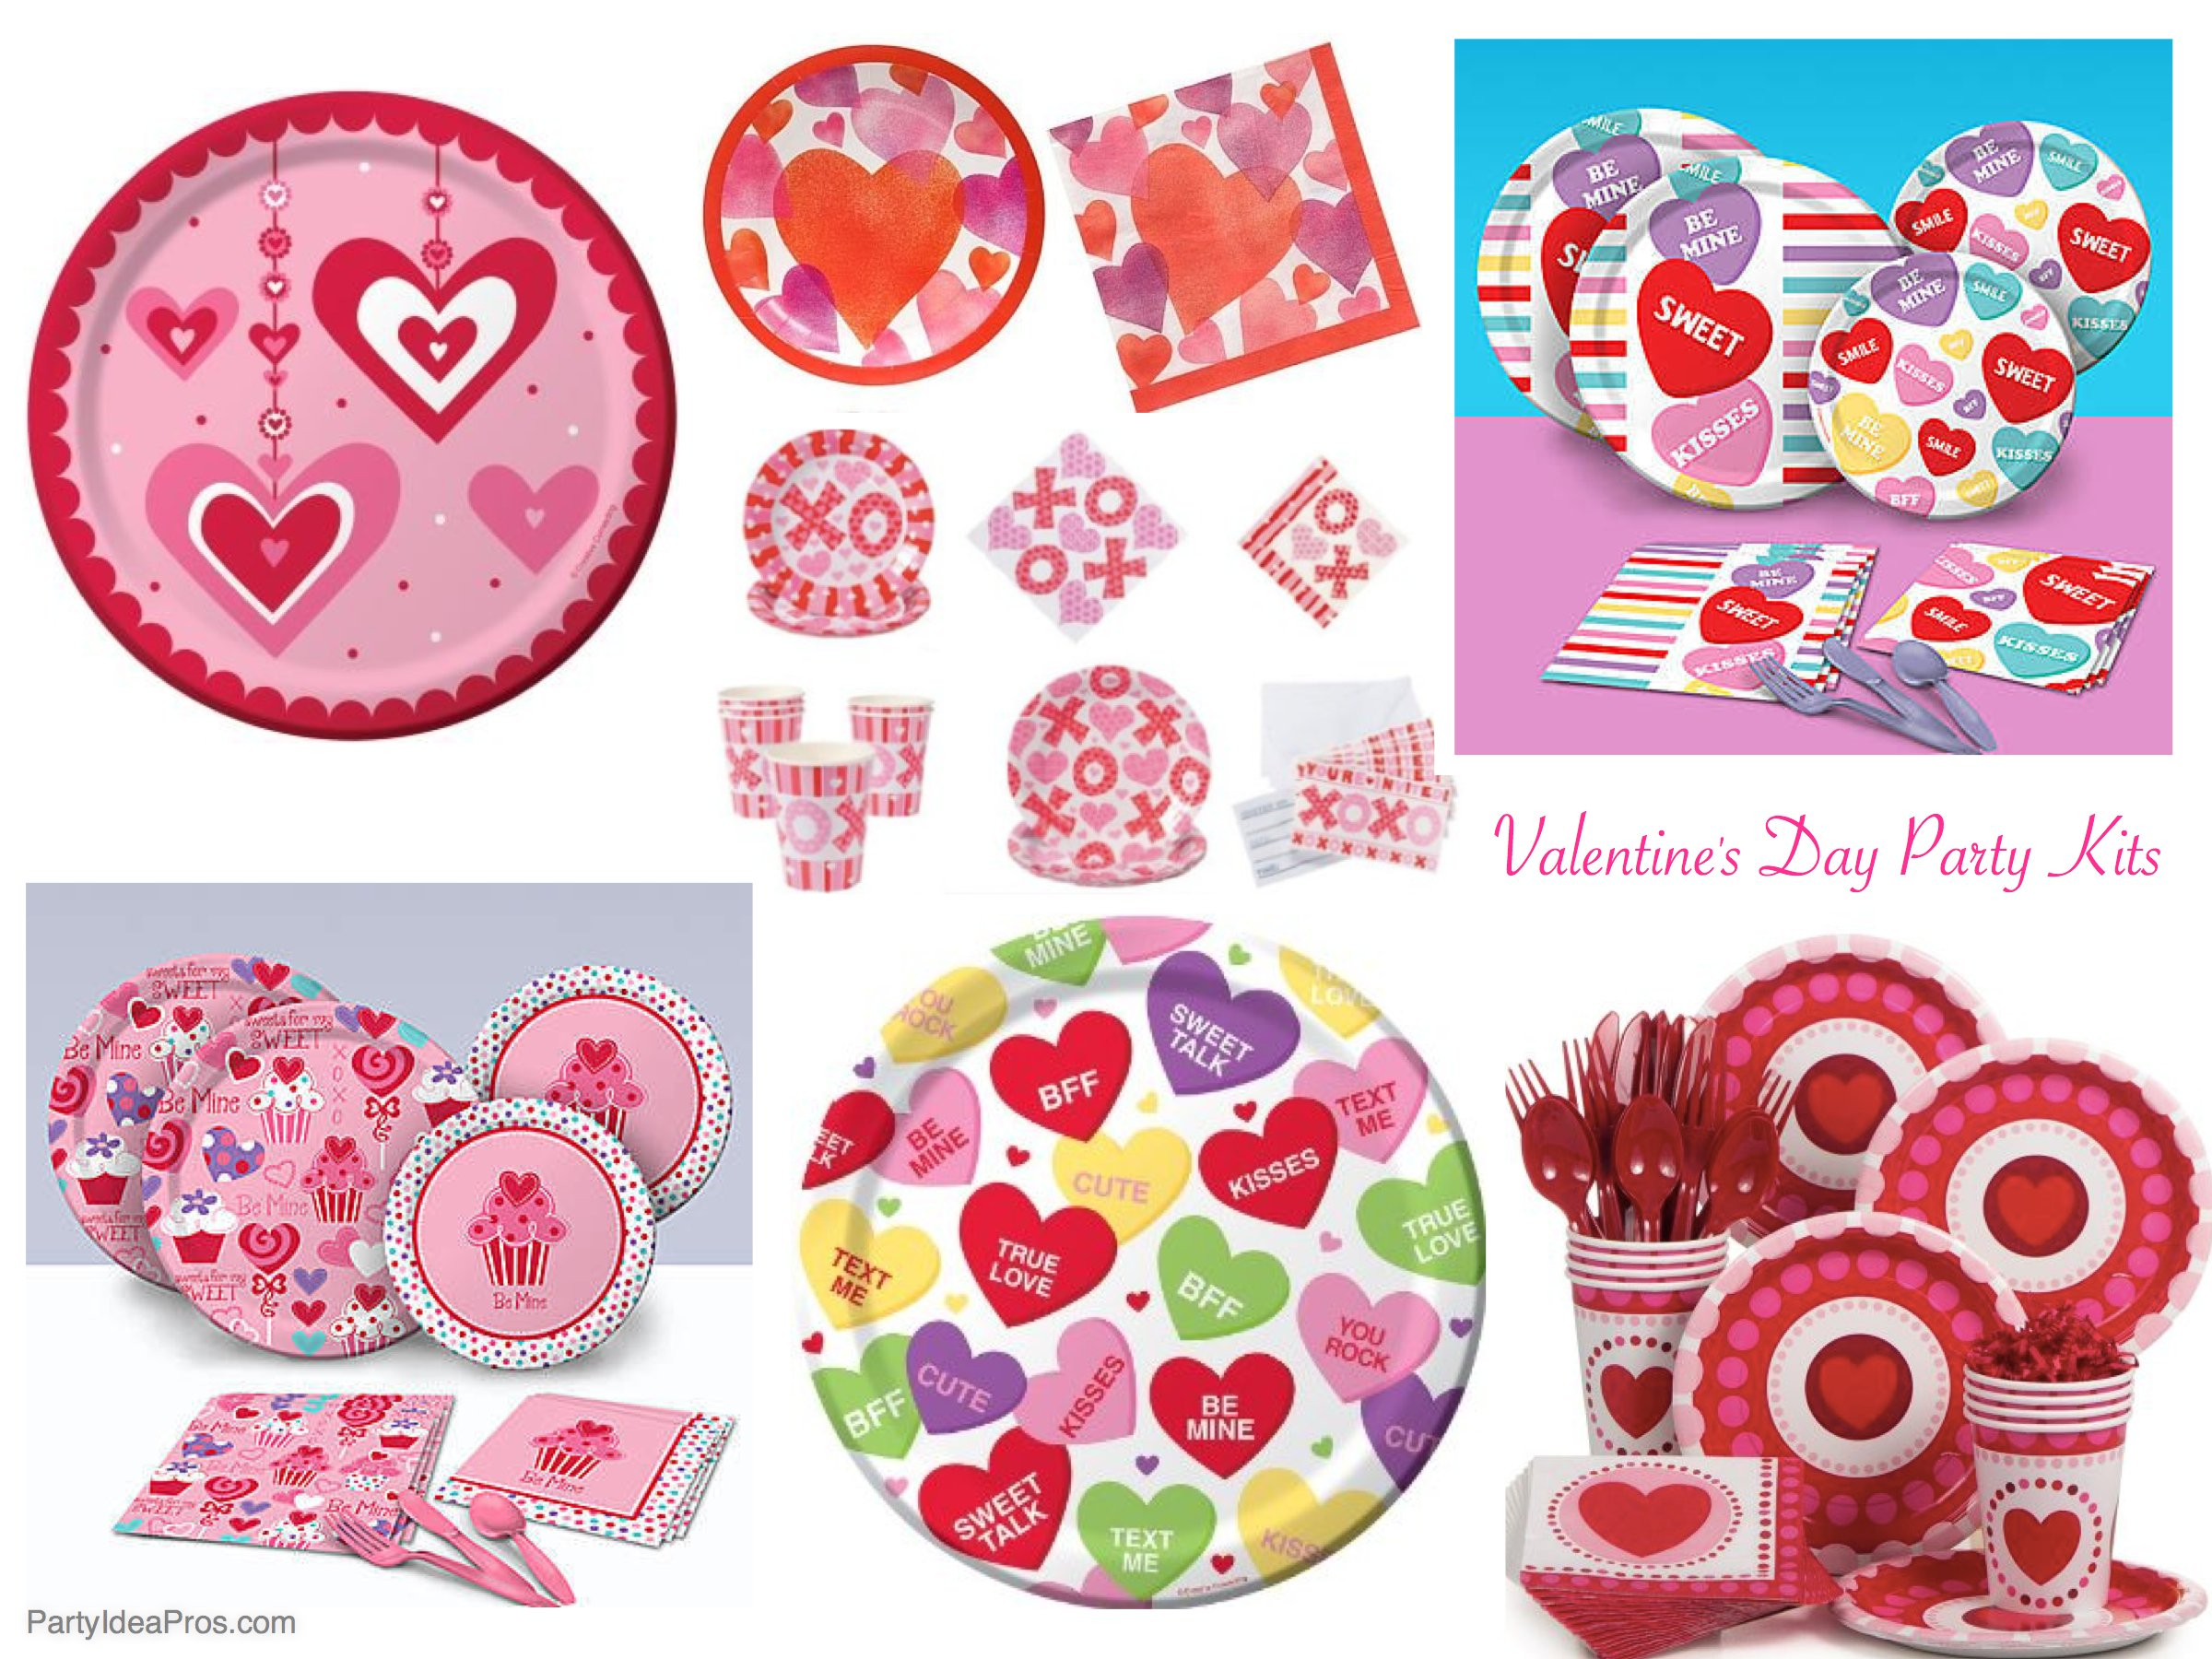 Best Valentines Day Party Kits, Valentineu0027s Day Party Plates